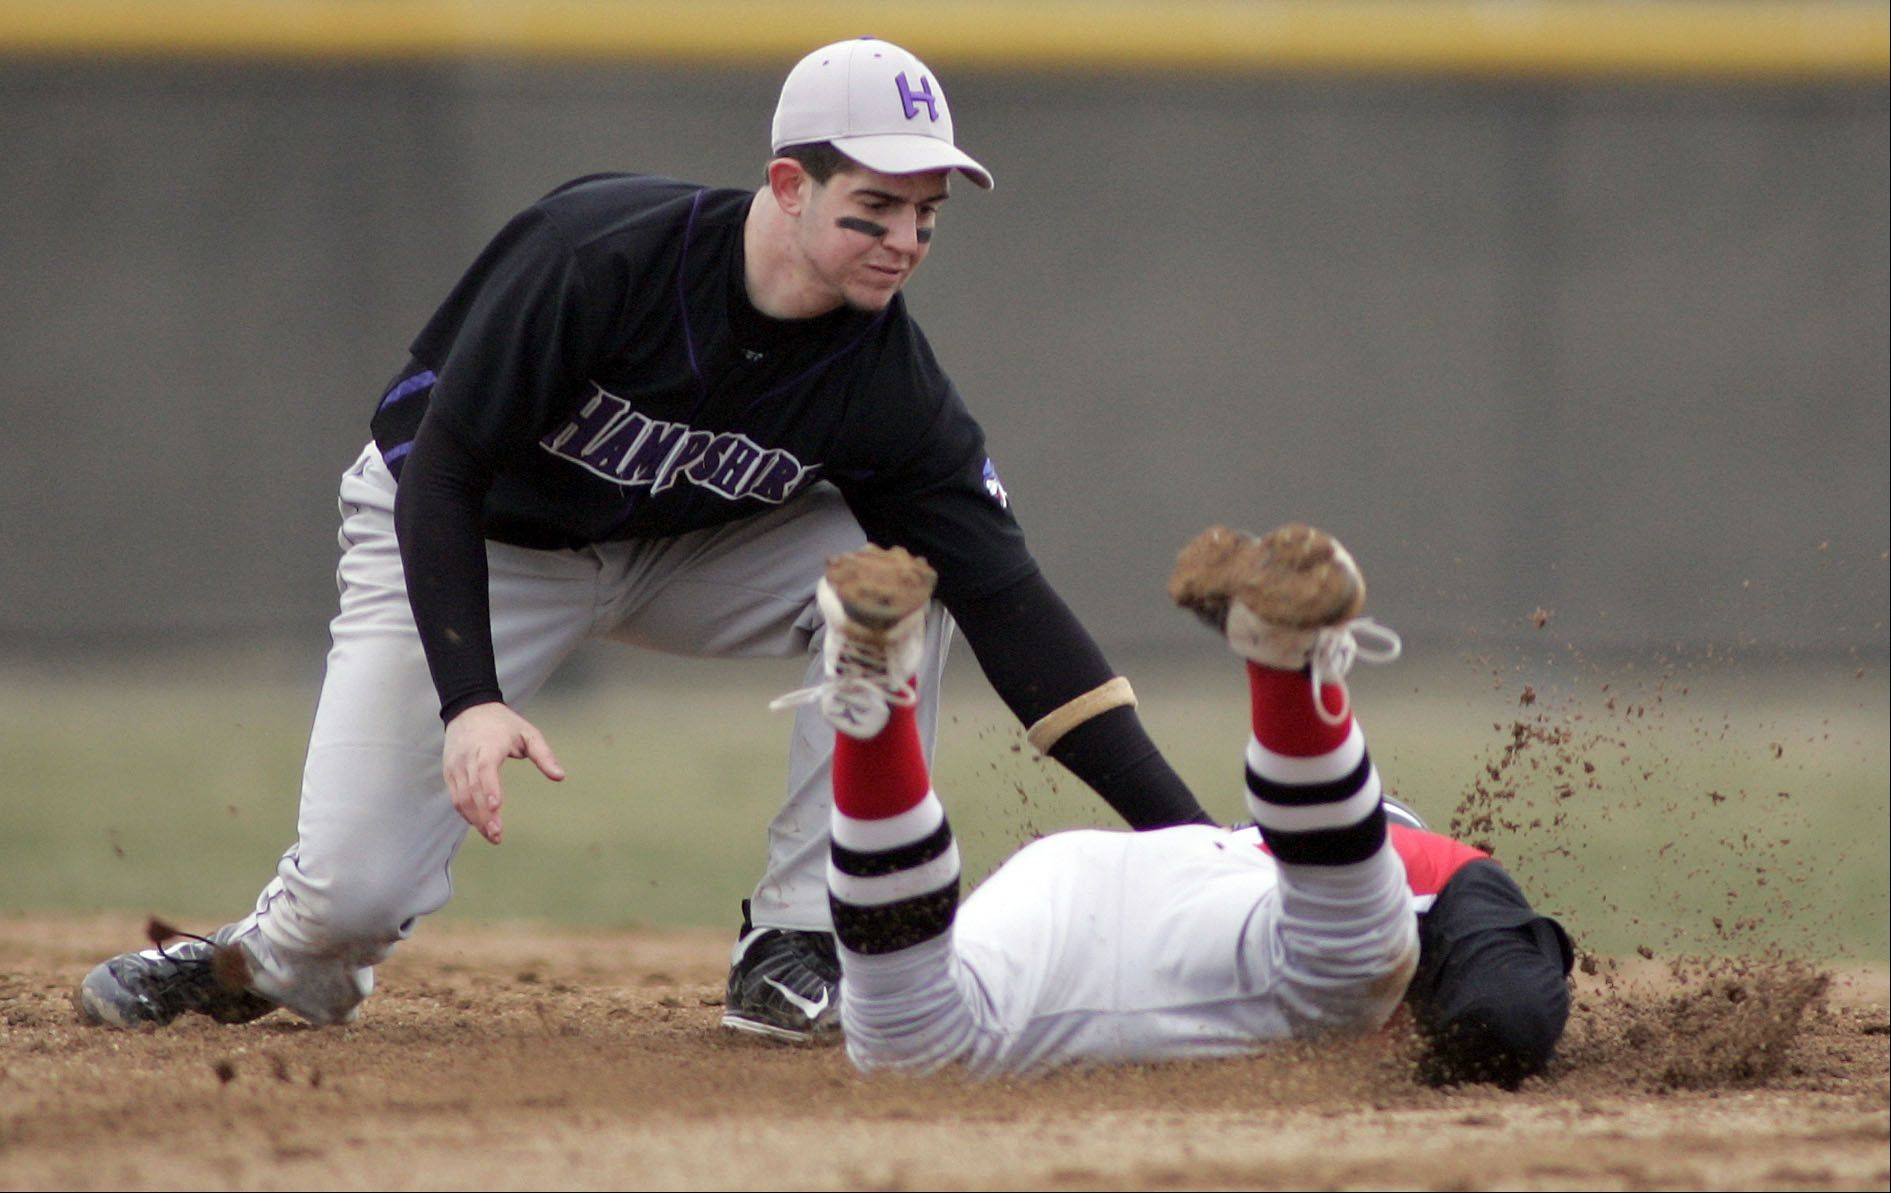 Hampshire's Michael Laramie puts the tag on Huntley's Jake Wagner on his slide into second base during Hampshire at Huntley baseball Tuesday.